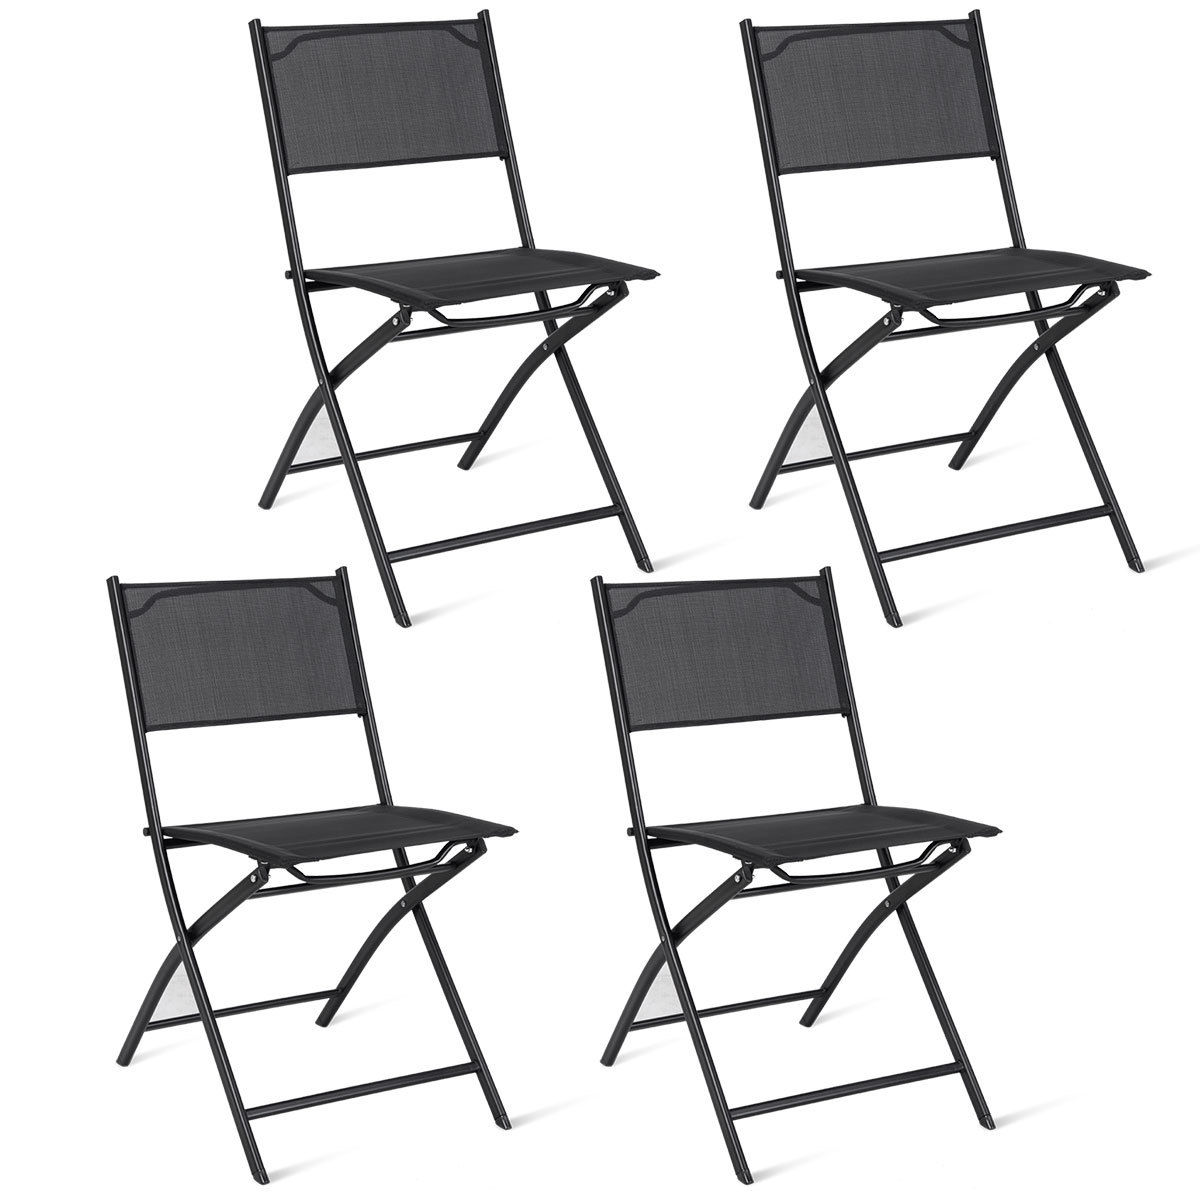 Costway Set of 4 Outdoor Patio Folding Chairs Camping Deck Garden Pool Beach Furniture